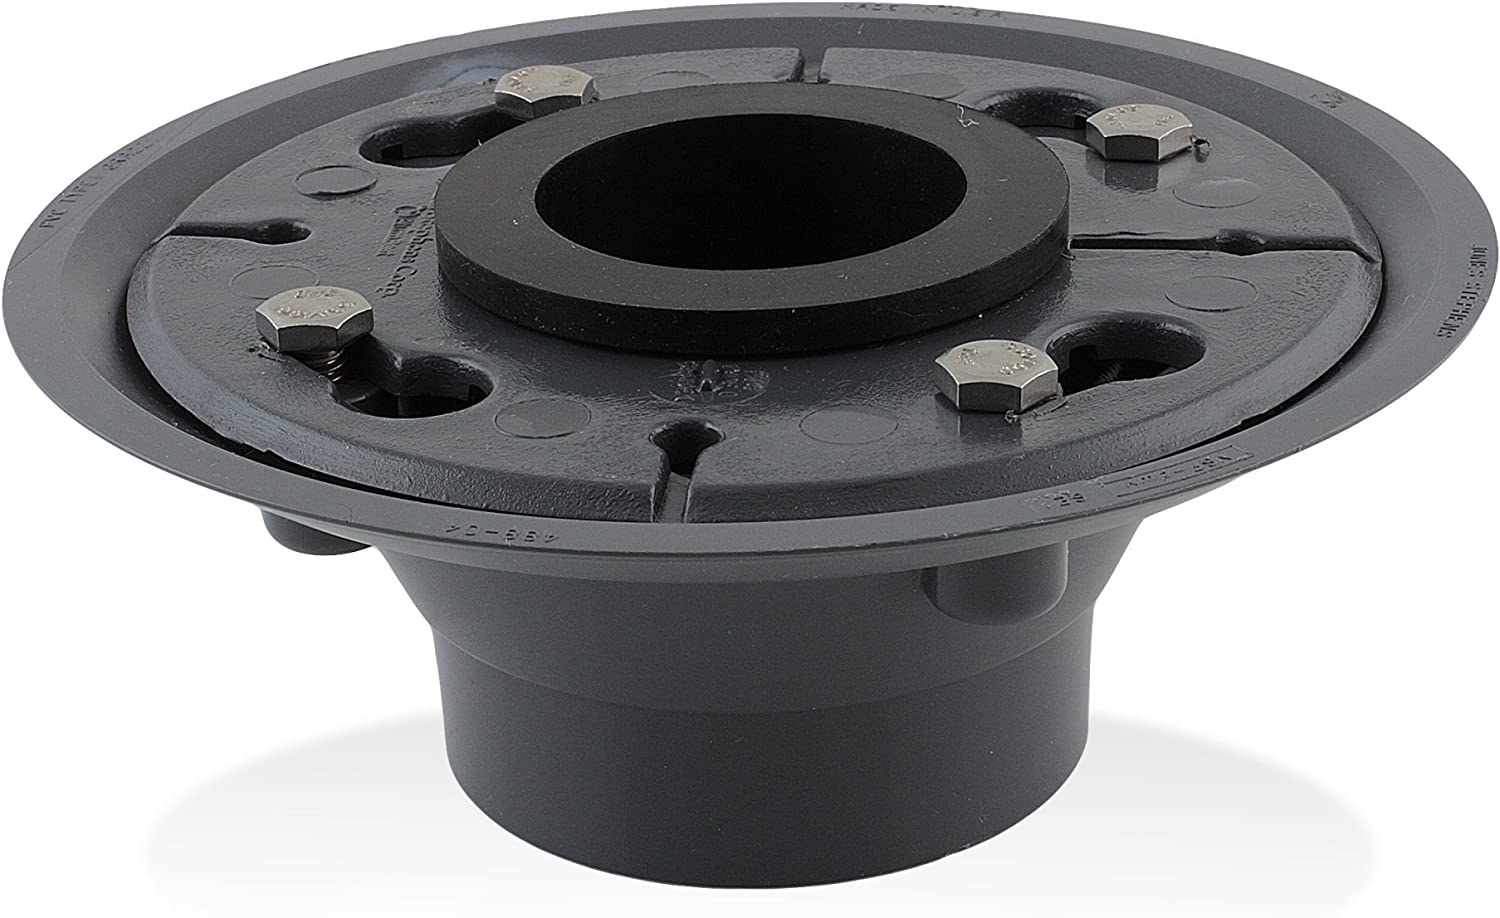 Luxe 2 PVC Shower Drain Base with Rubber Gasket by Aqva